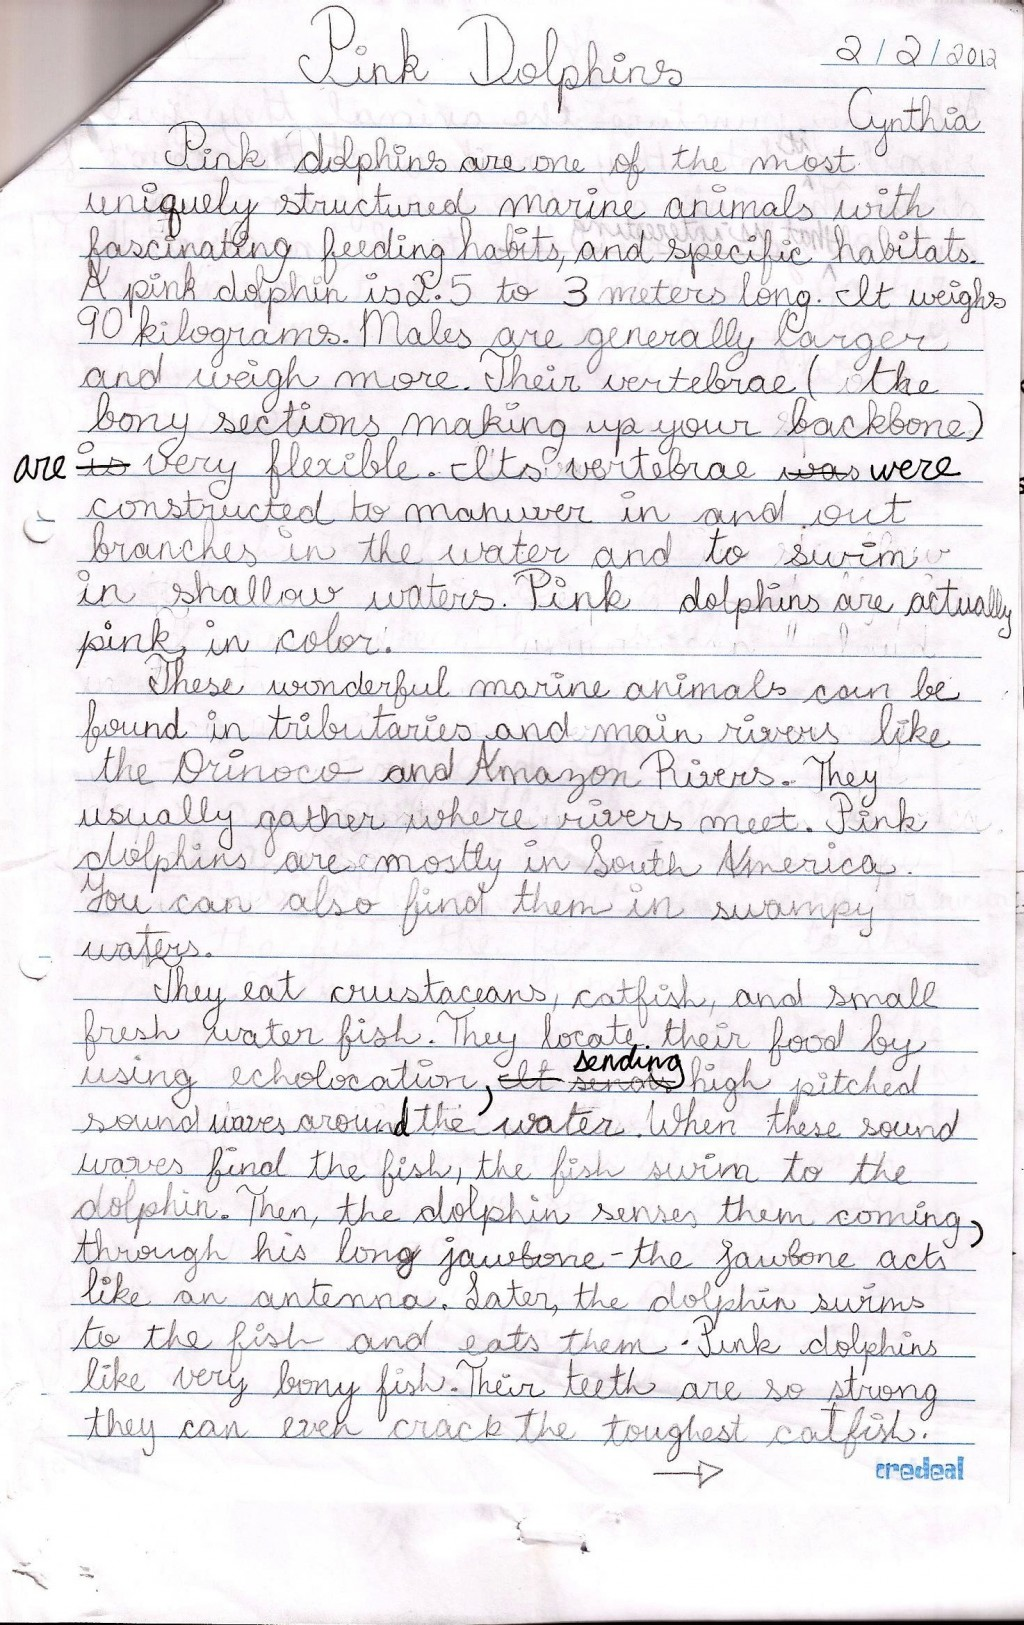 018 Persuasive Essay Rubric Example Pink Dolphins Handwritten Stunning Argumentative Grade 10 8th Doc Middle School Pdf Large